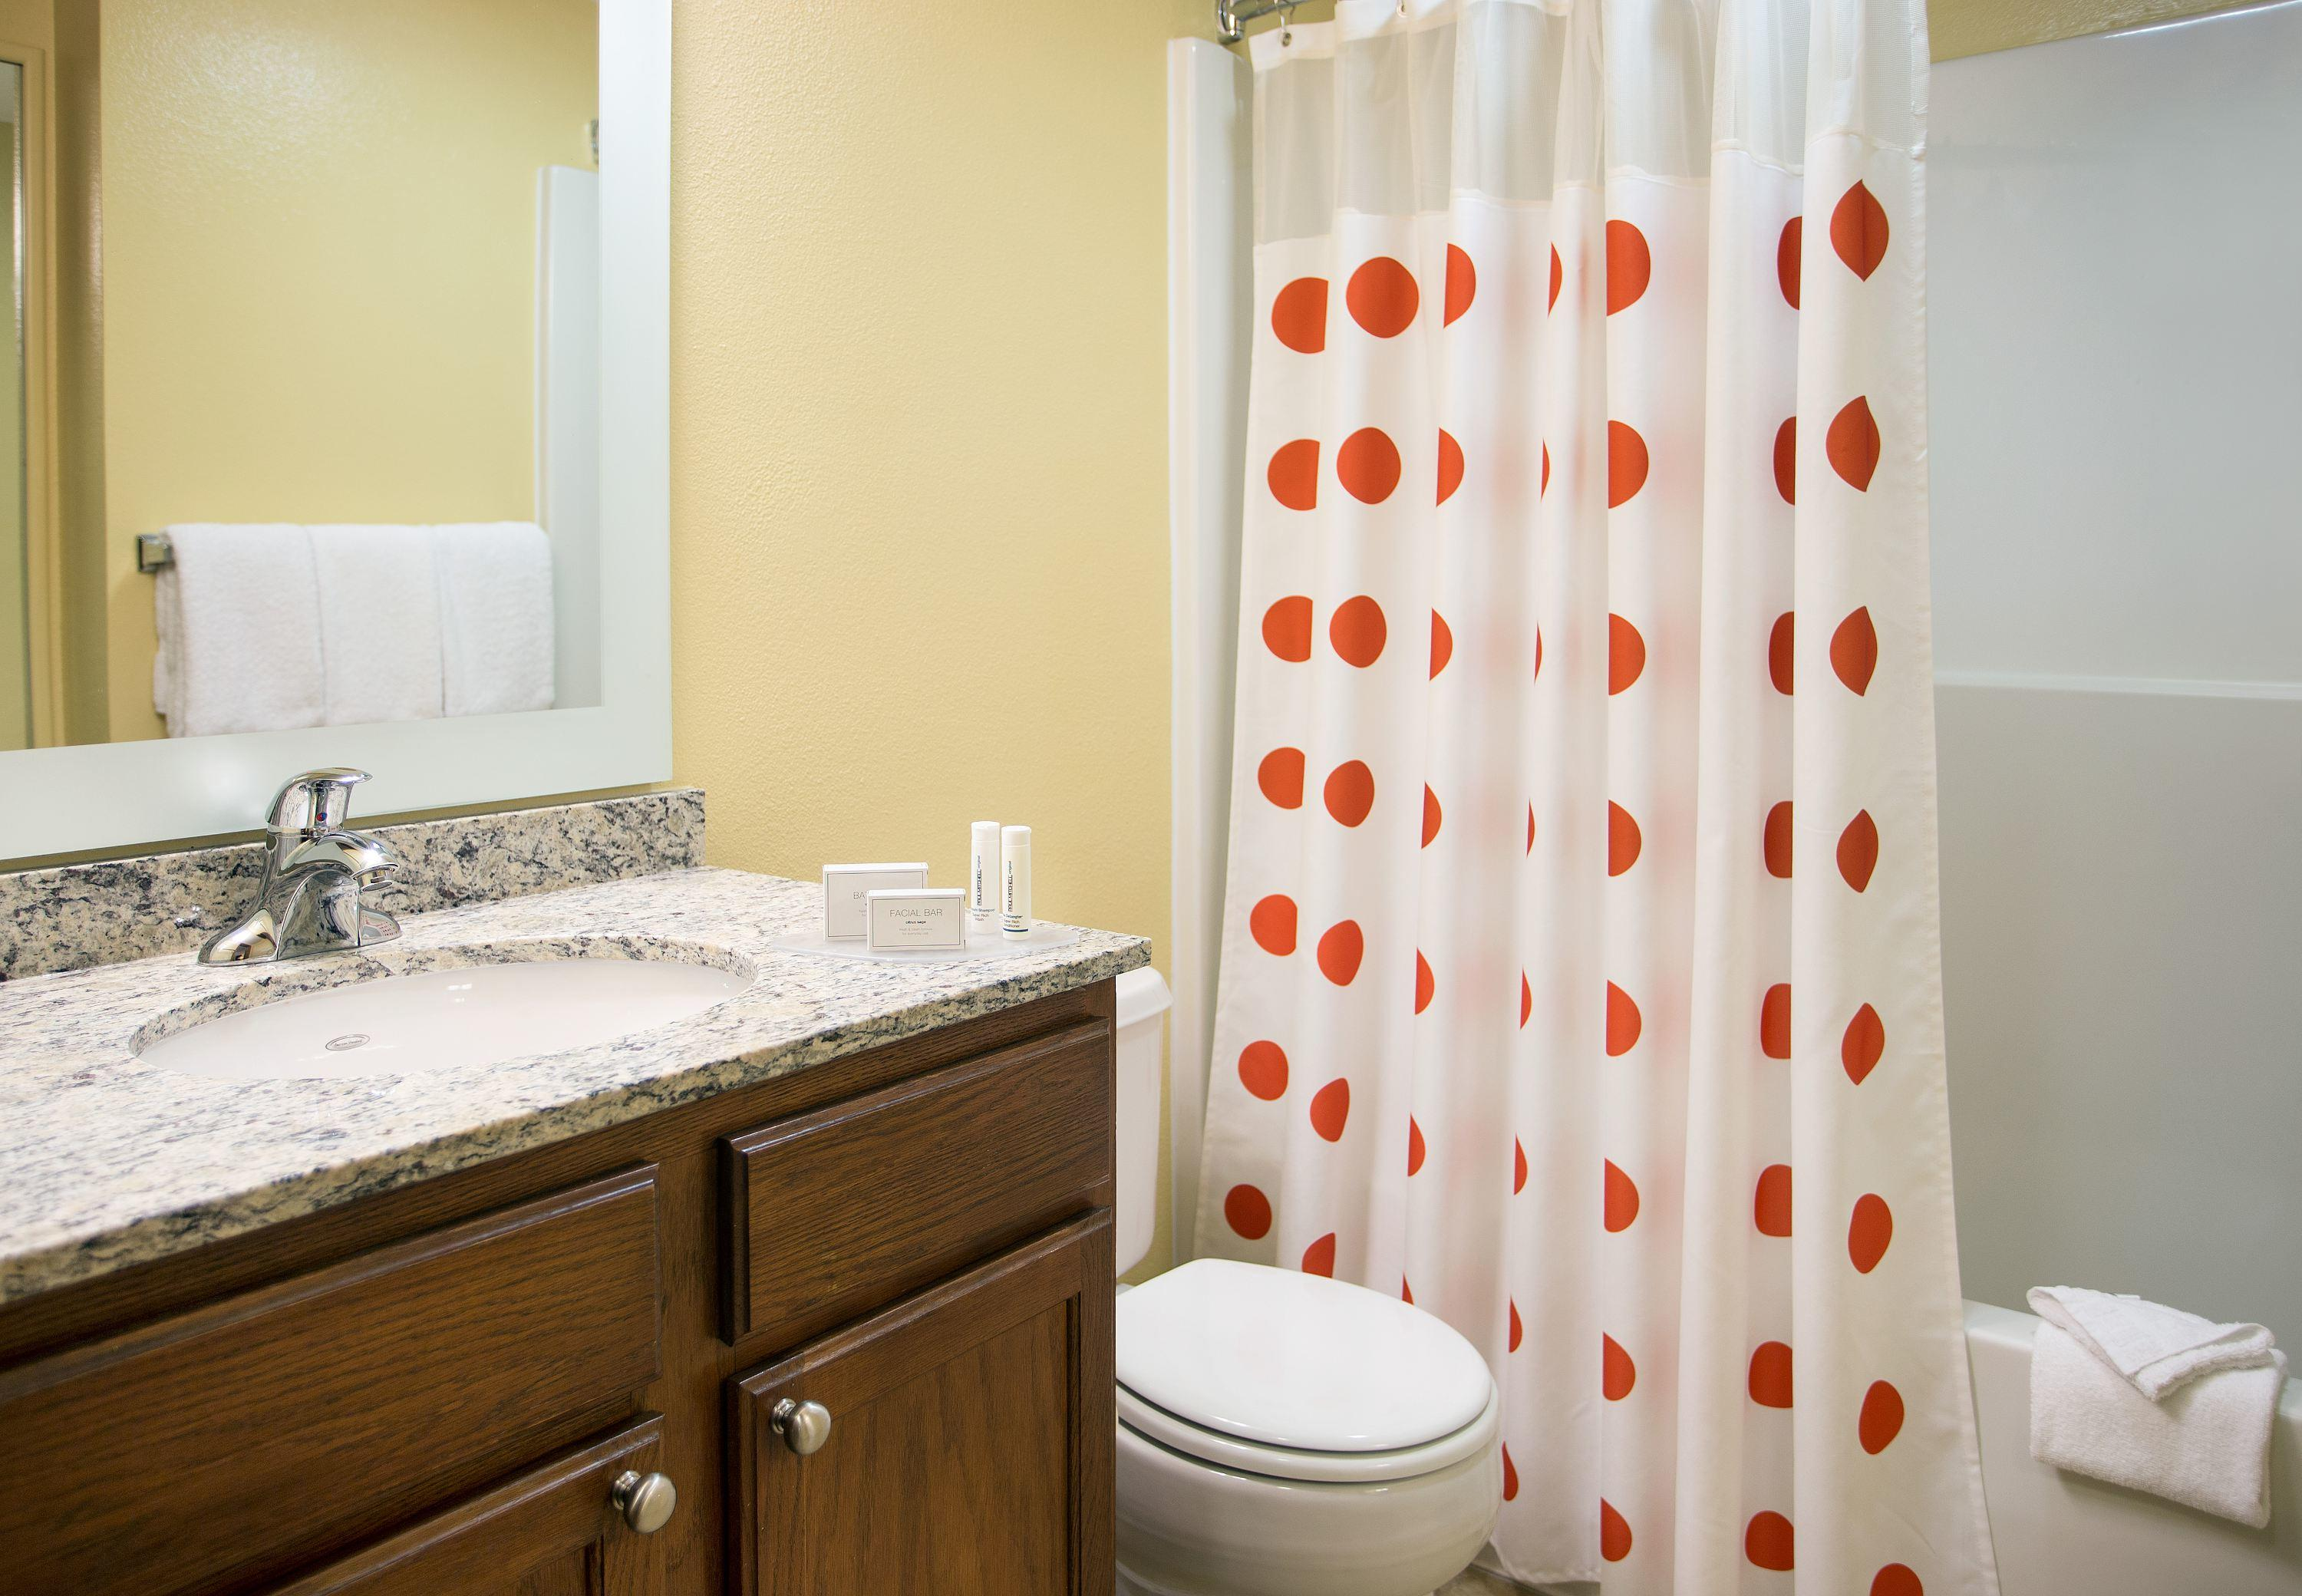 TownePlace Suites by Marriott Scottsdale image 0